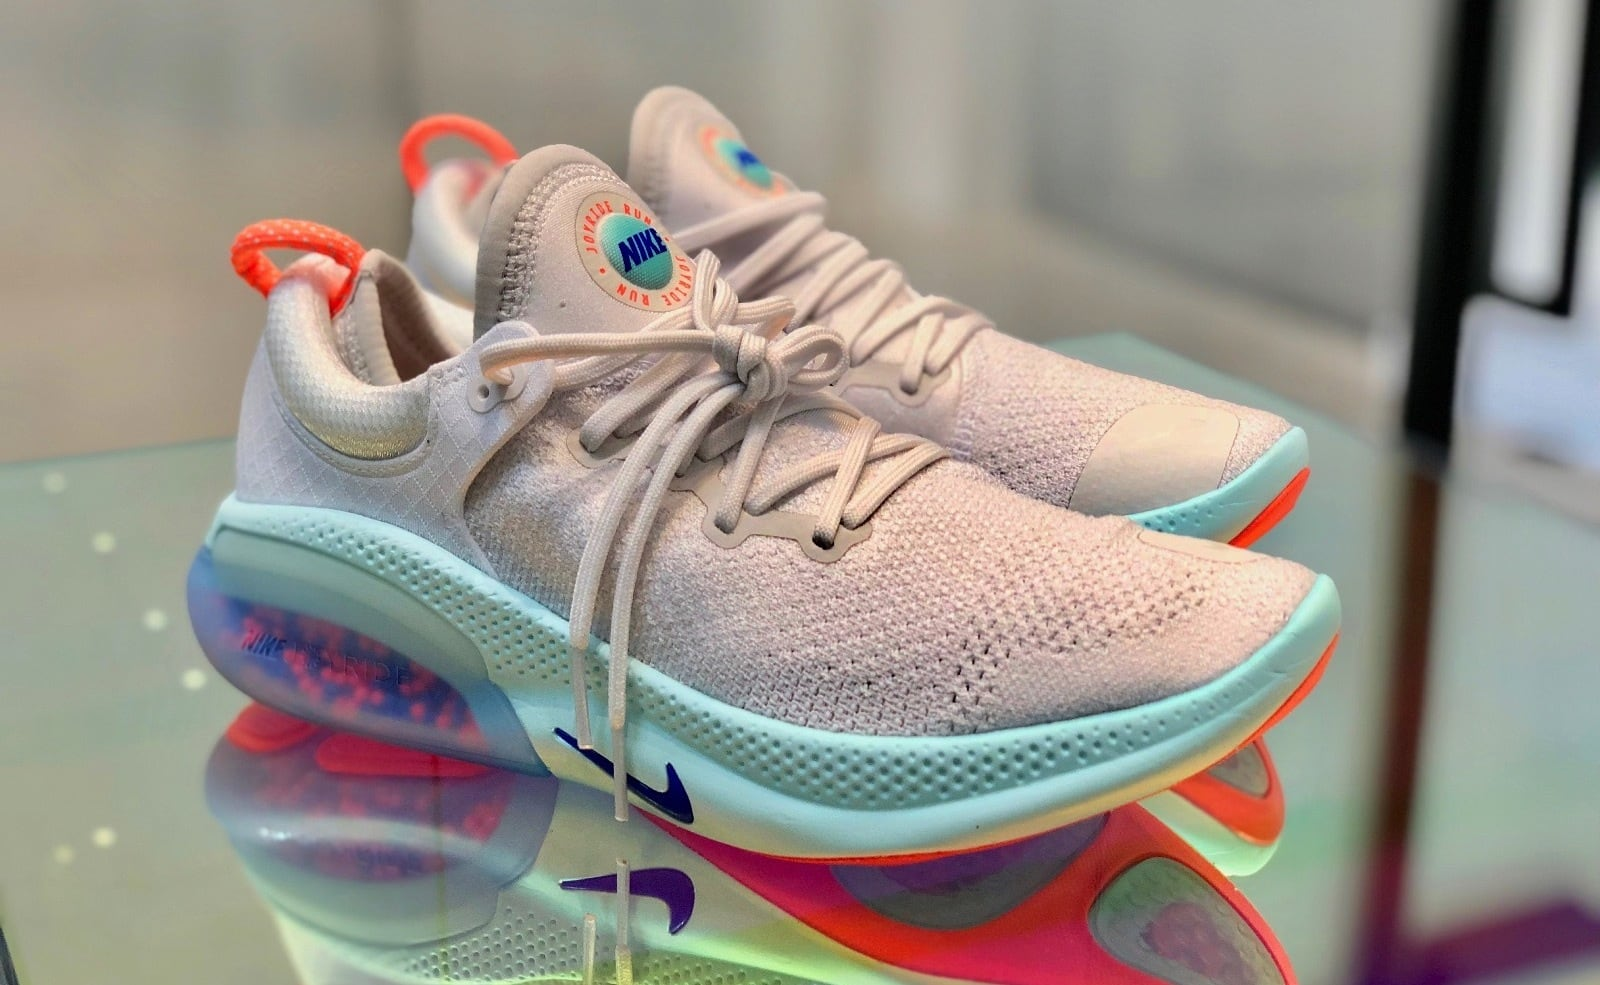 Nike Joyride Bead-Filled Shoes provide a personalized cushion